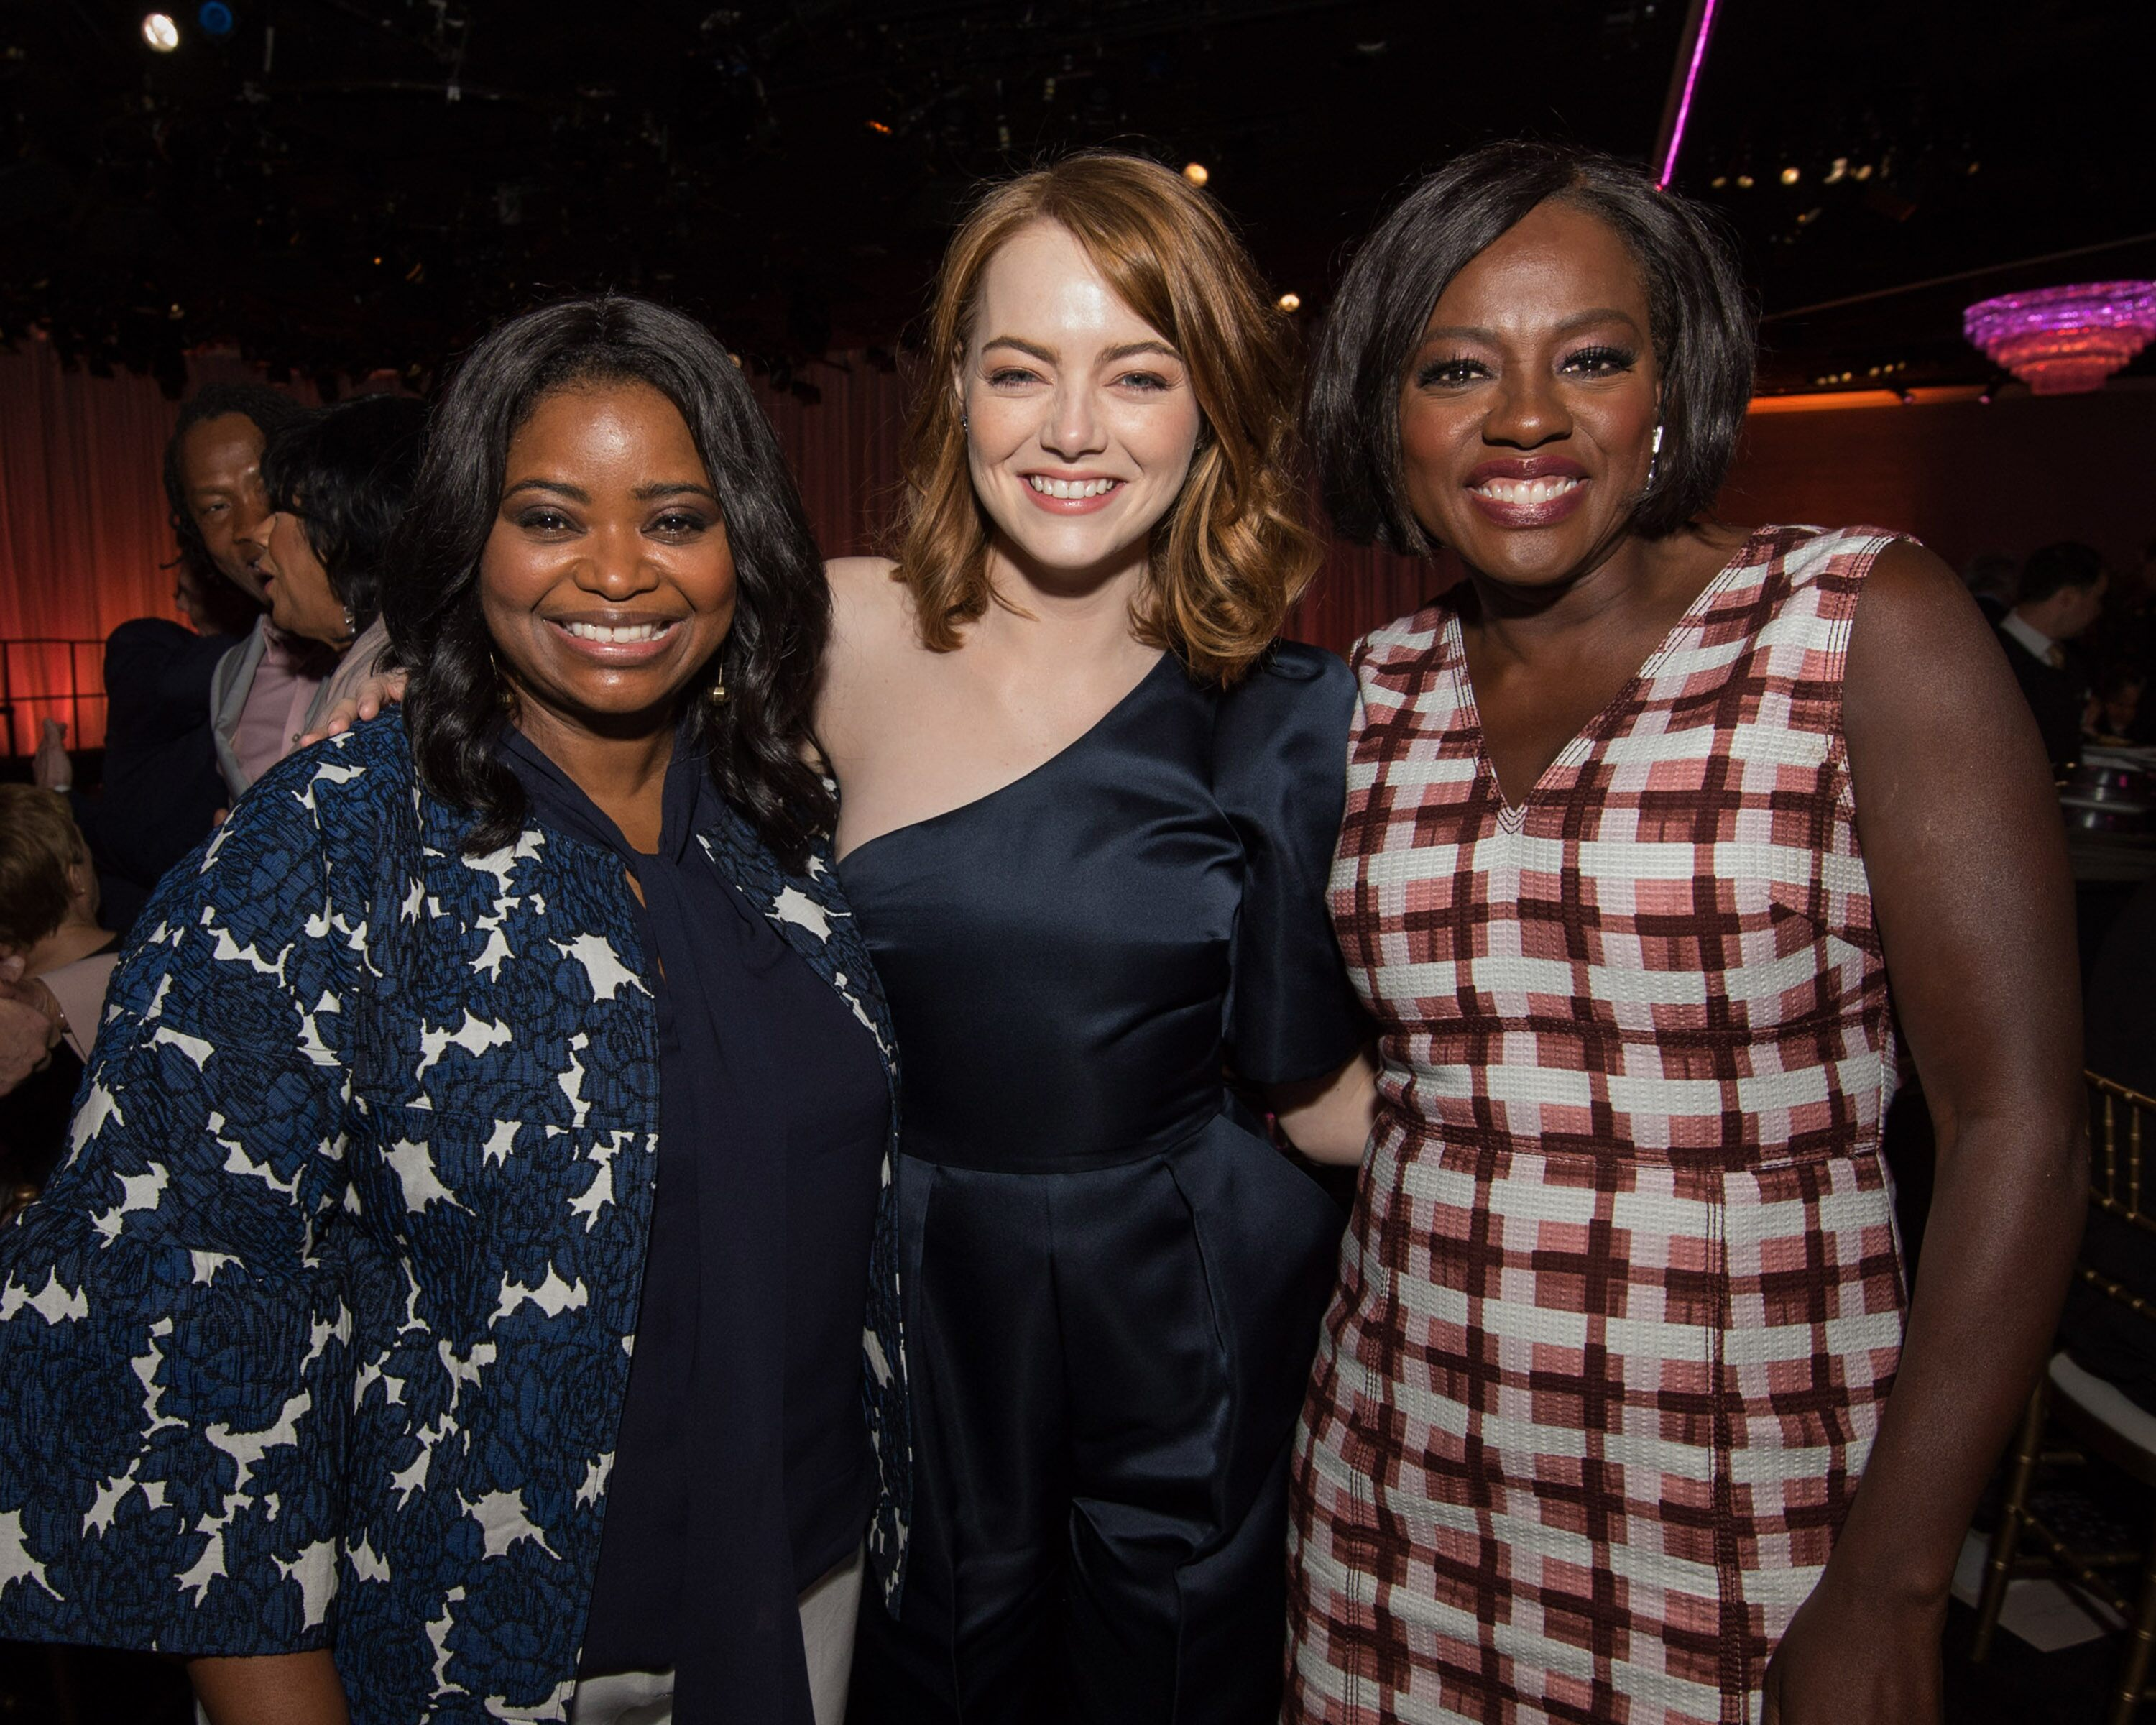 Oscar nominees Octavia Spencer, Emma Stone and Viola Davis